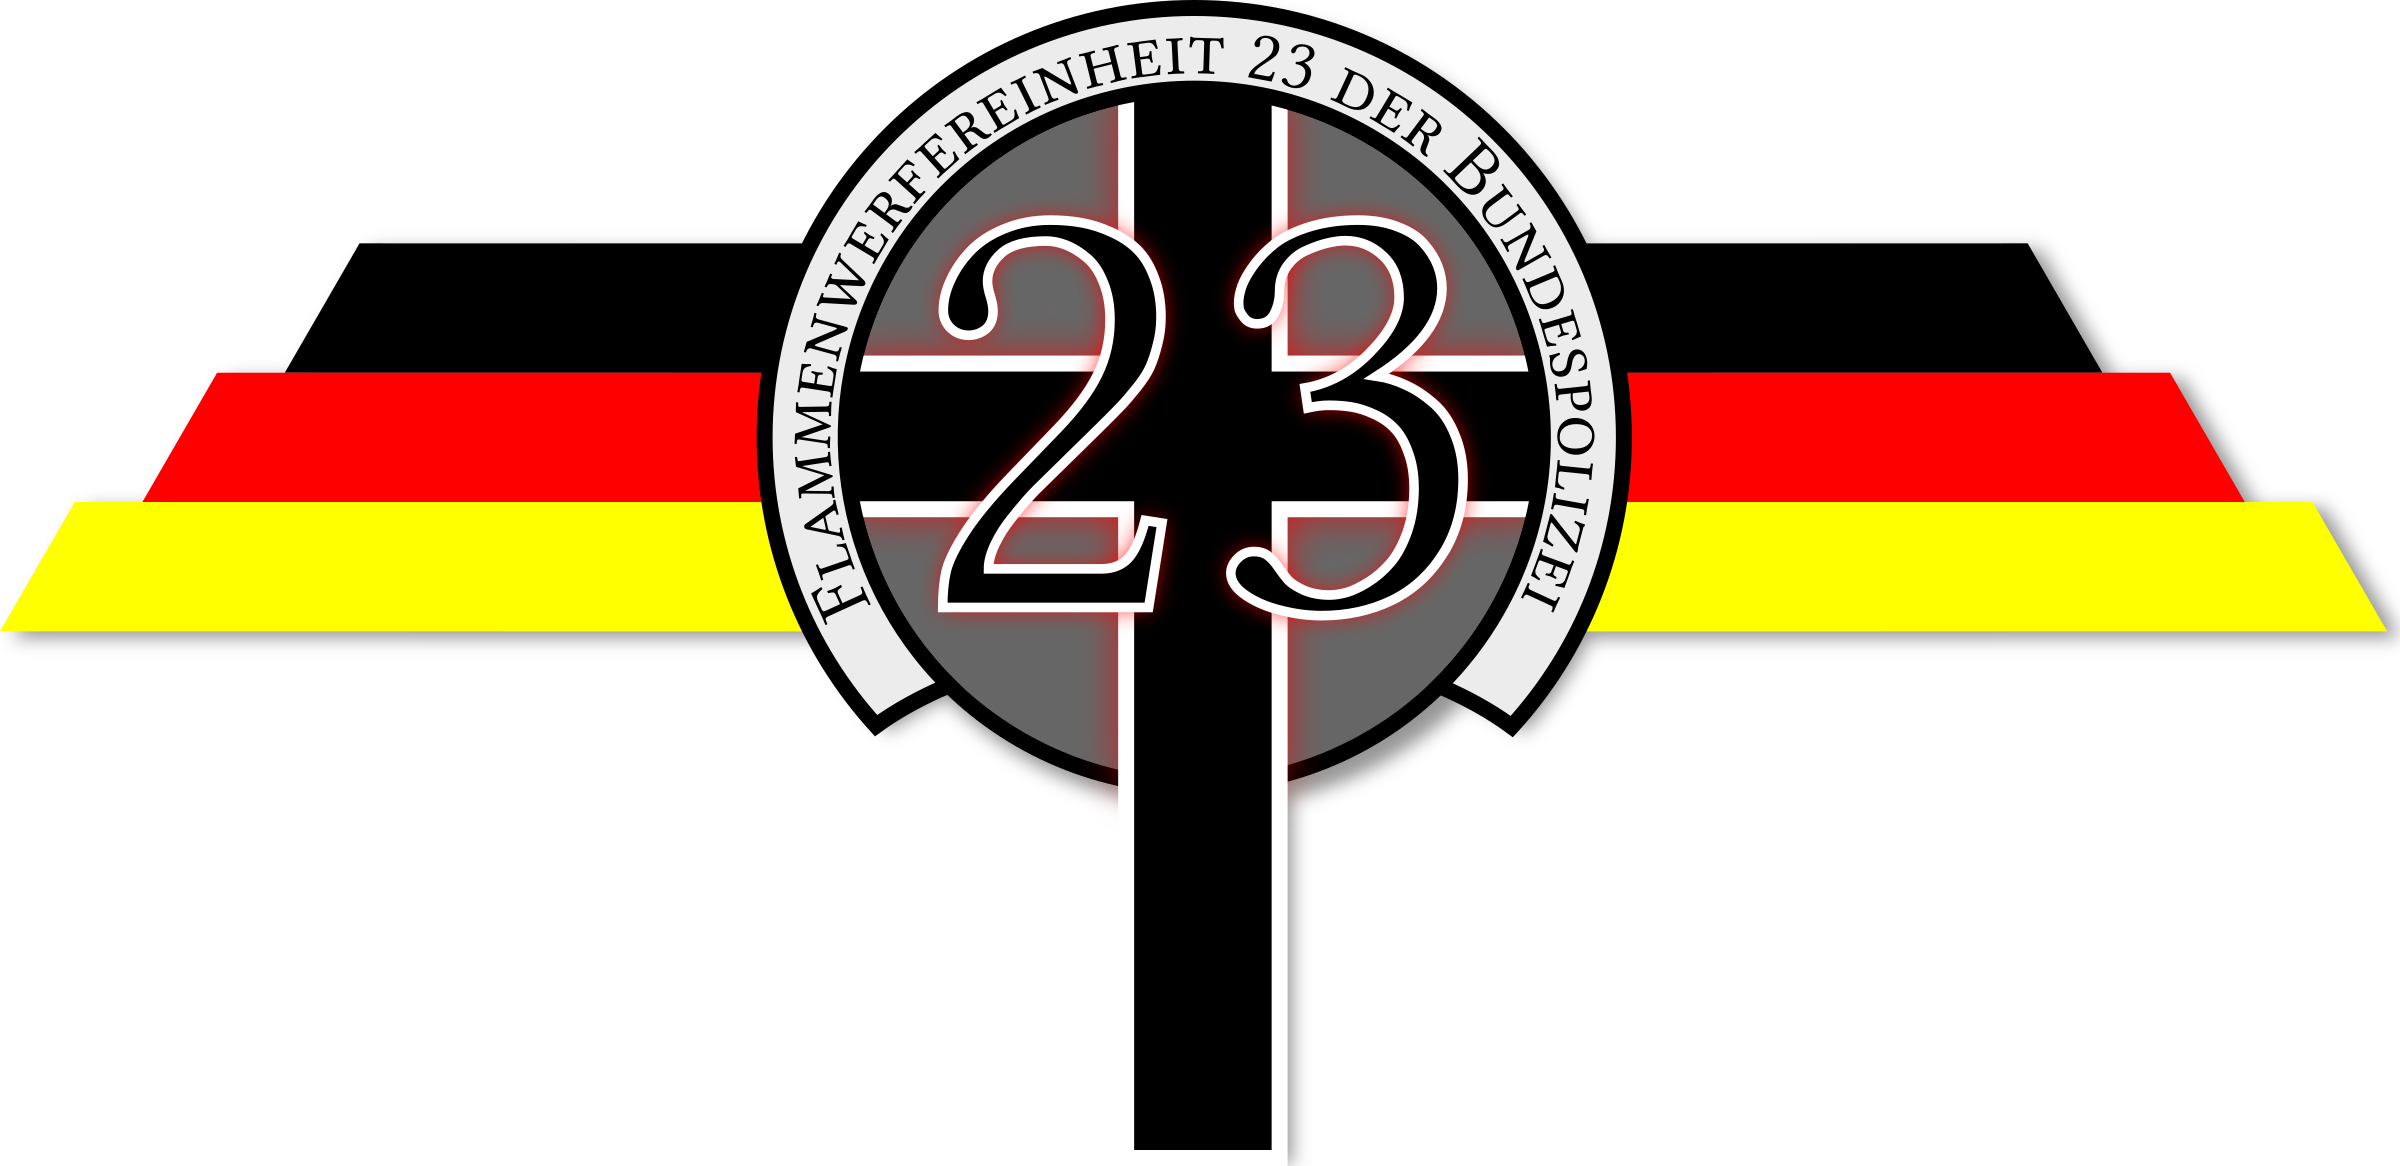 Flame Thrower Police Squad 23 Logo by flamethrowerpolice